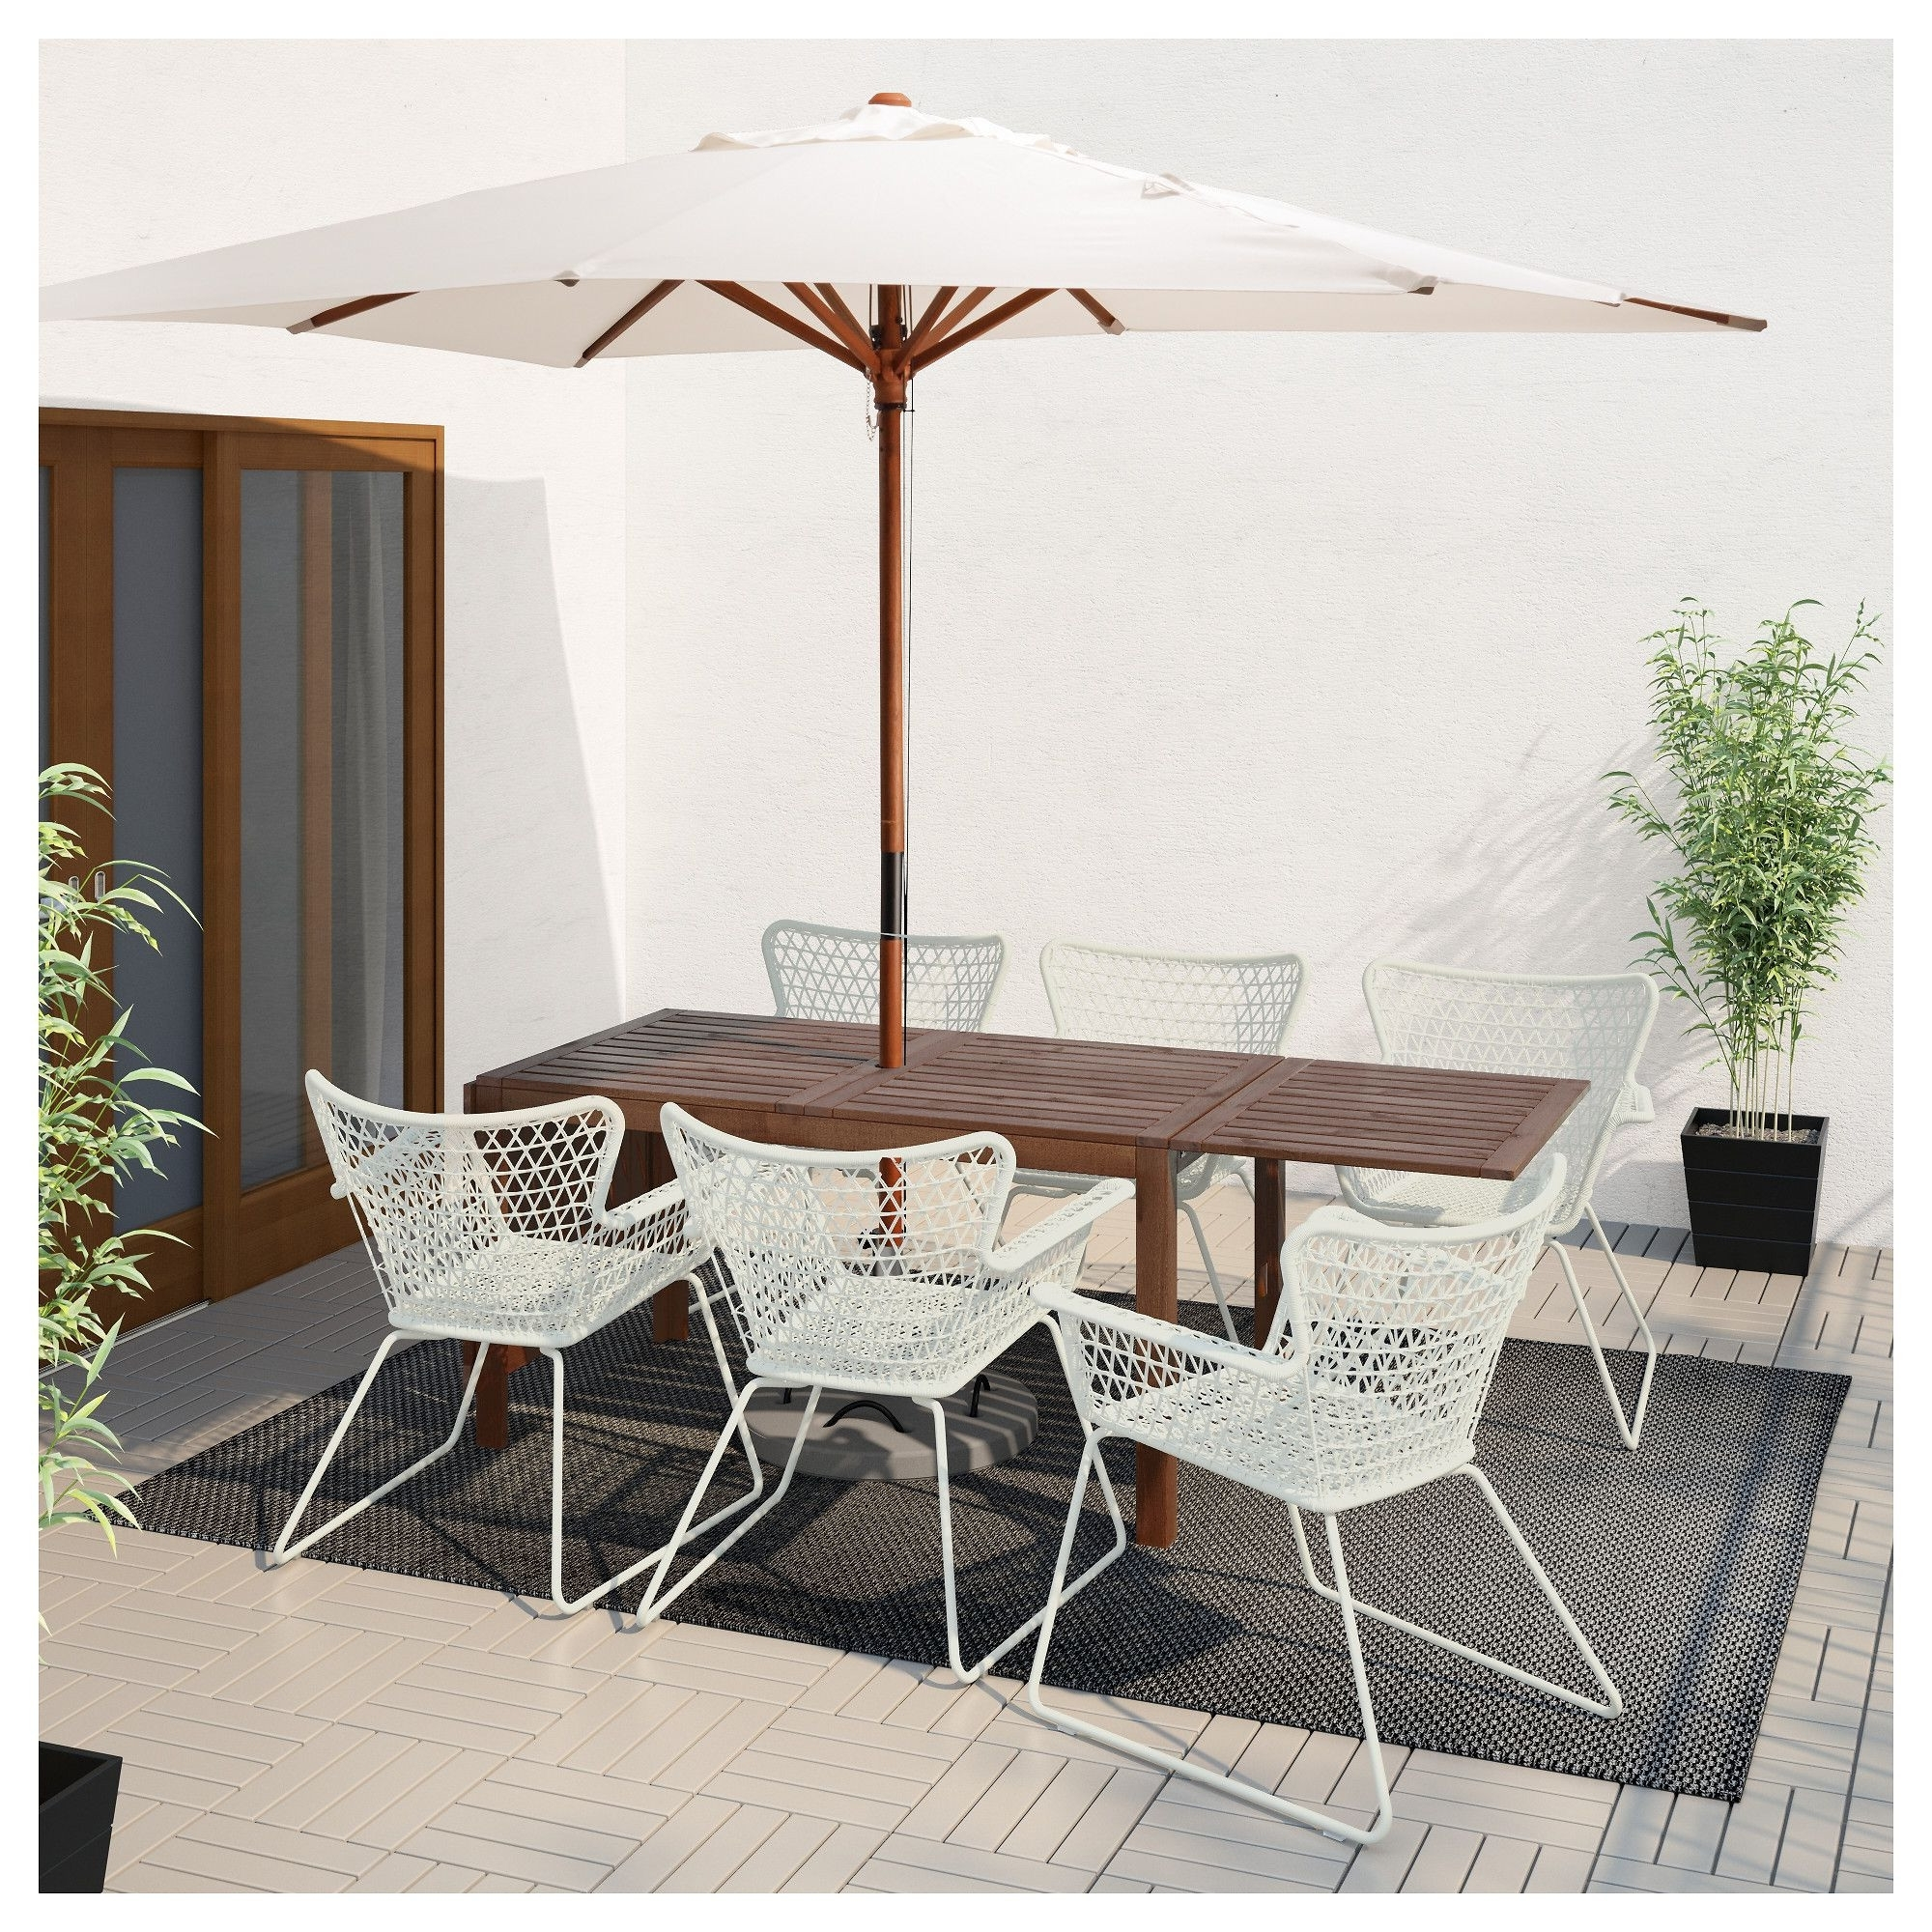 Commercial Outdoor Umbrellas Elegant Best For High Wind Areas This Intended For Fashionable Patio Umbrellas For High Wind Areas (View 3 of 20)